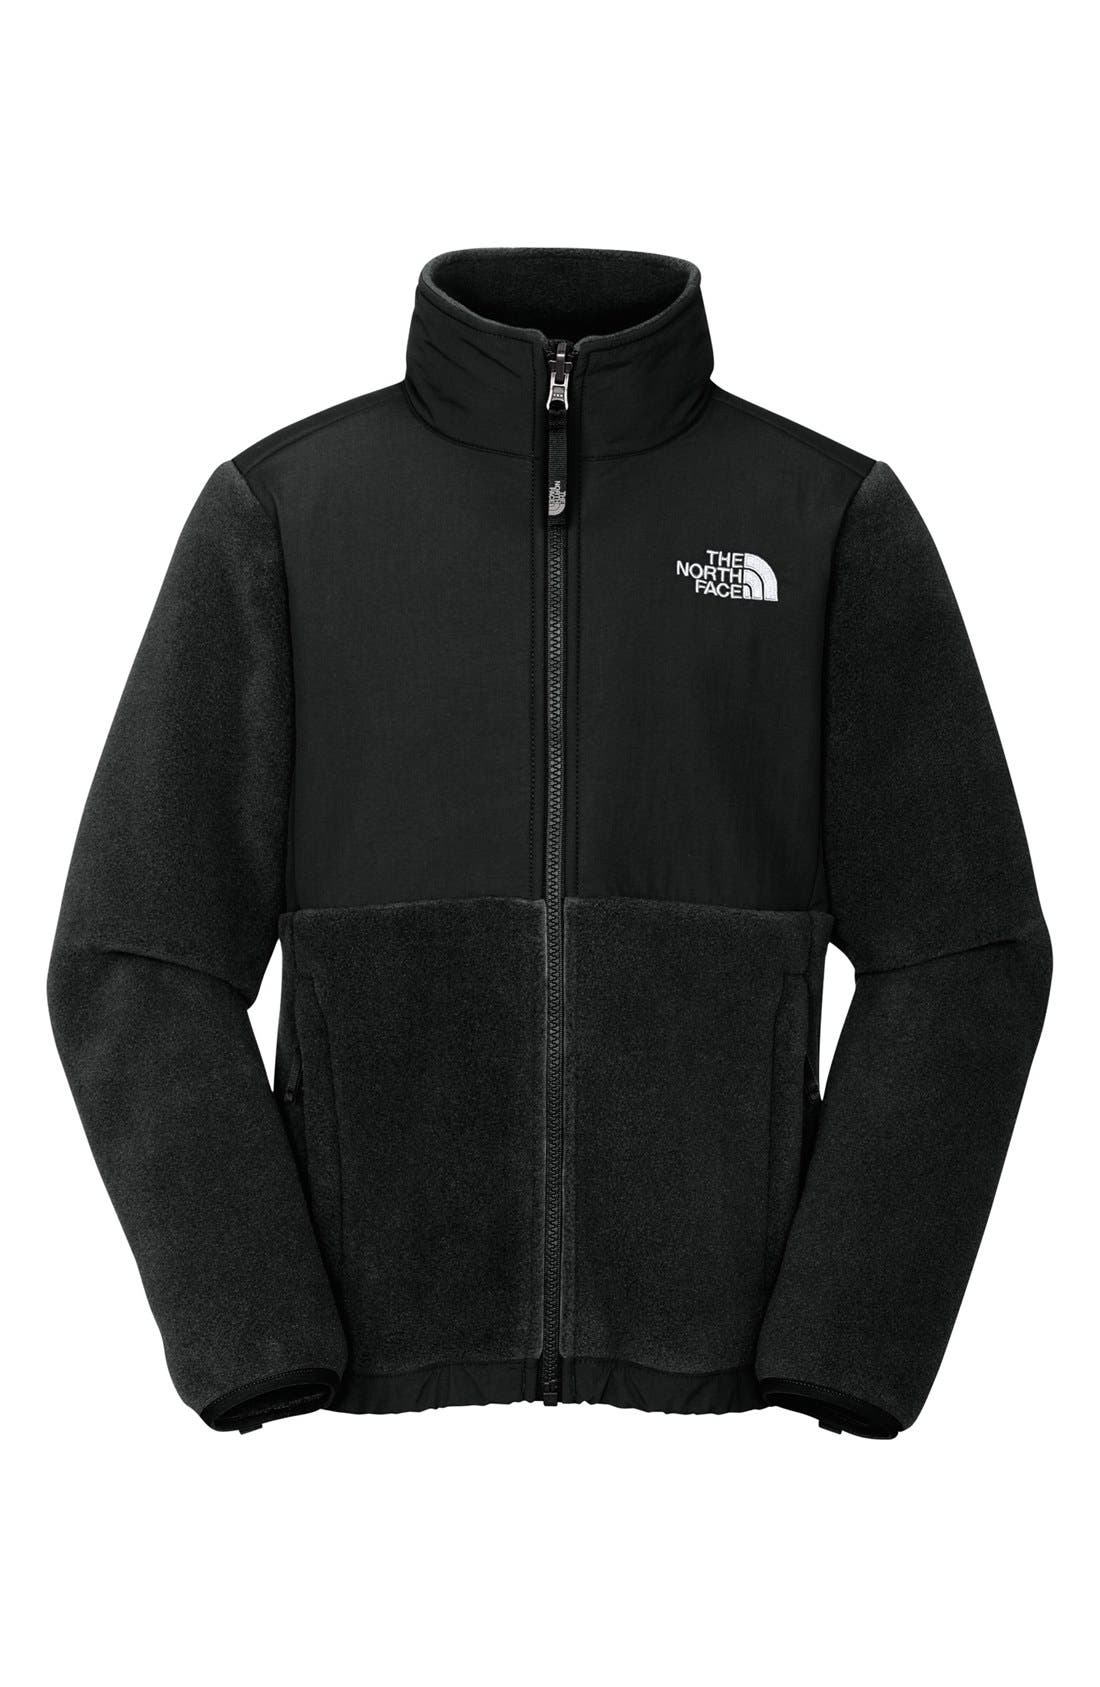 Alternate Image 1 Selected - The North Face 'Denali' Jacket (Little Girls & Big Girls)